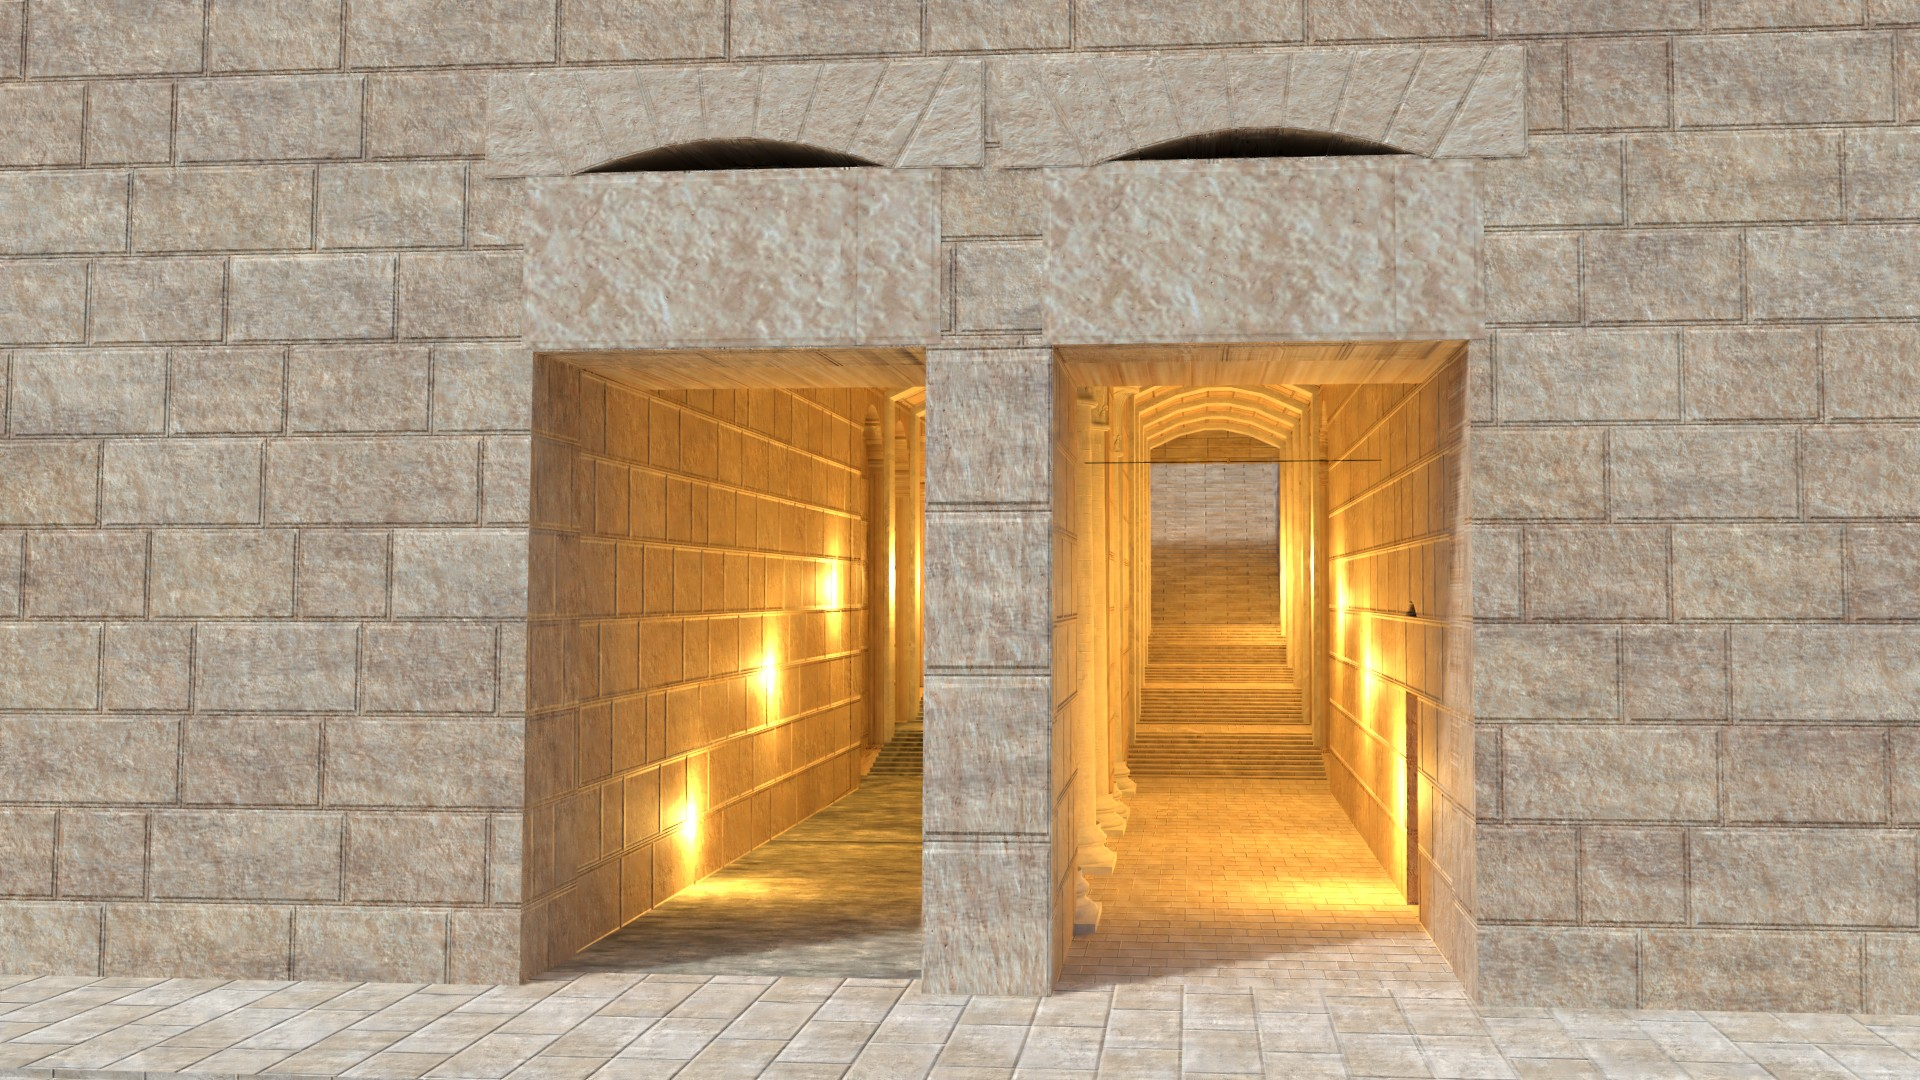 The lit interior of the staircase that led down from the temple area to the Hulda Gates